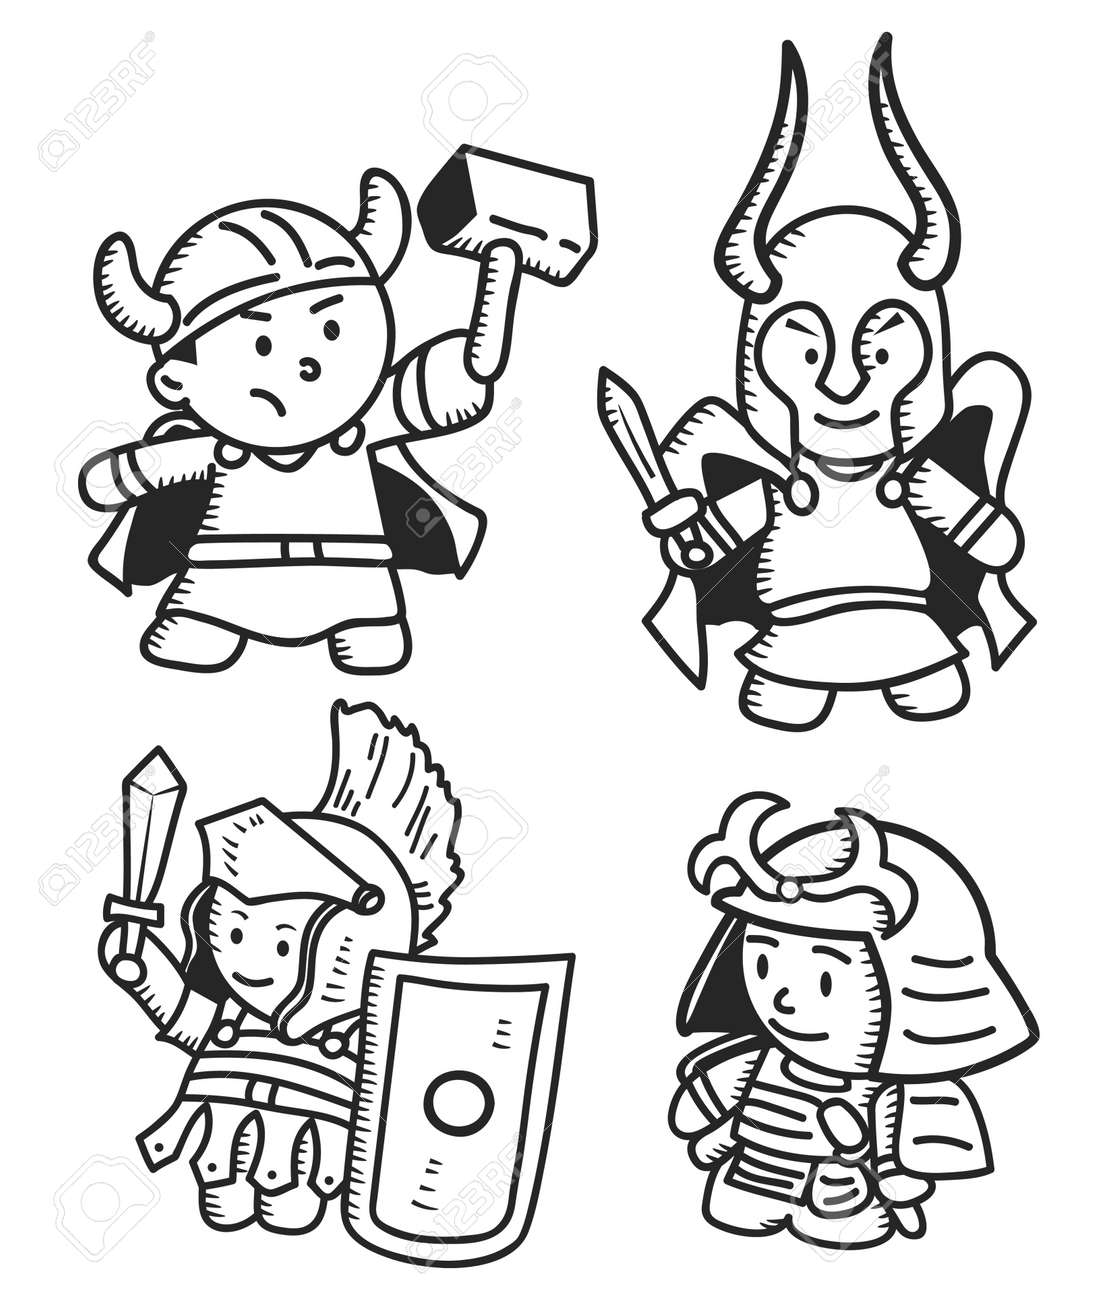 warrior doodle royalty free cliparts vectors and stock